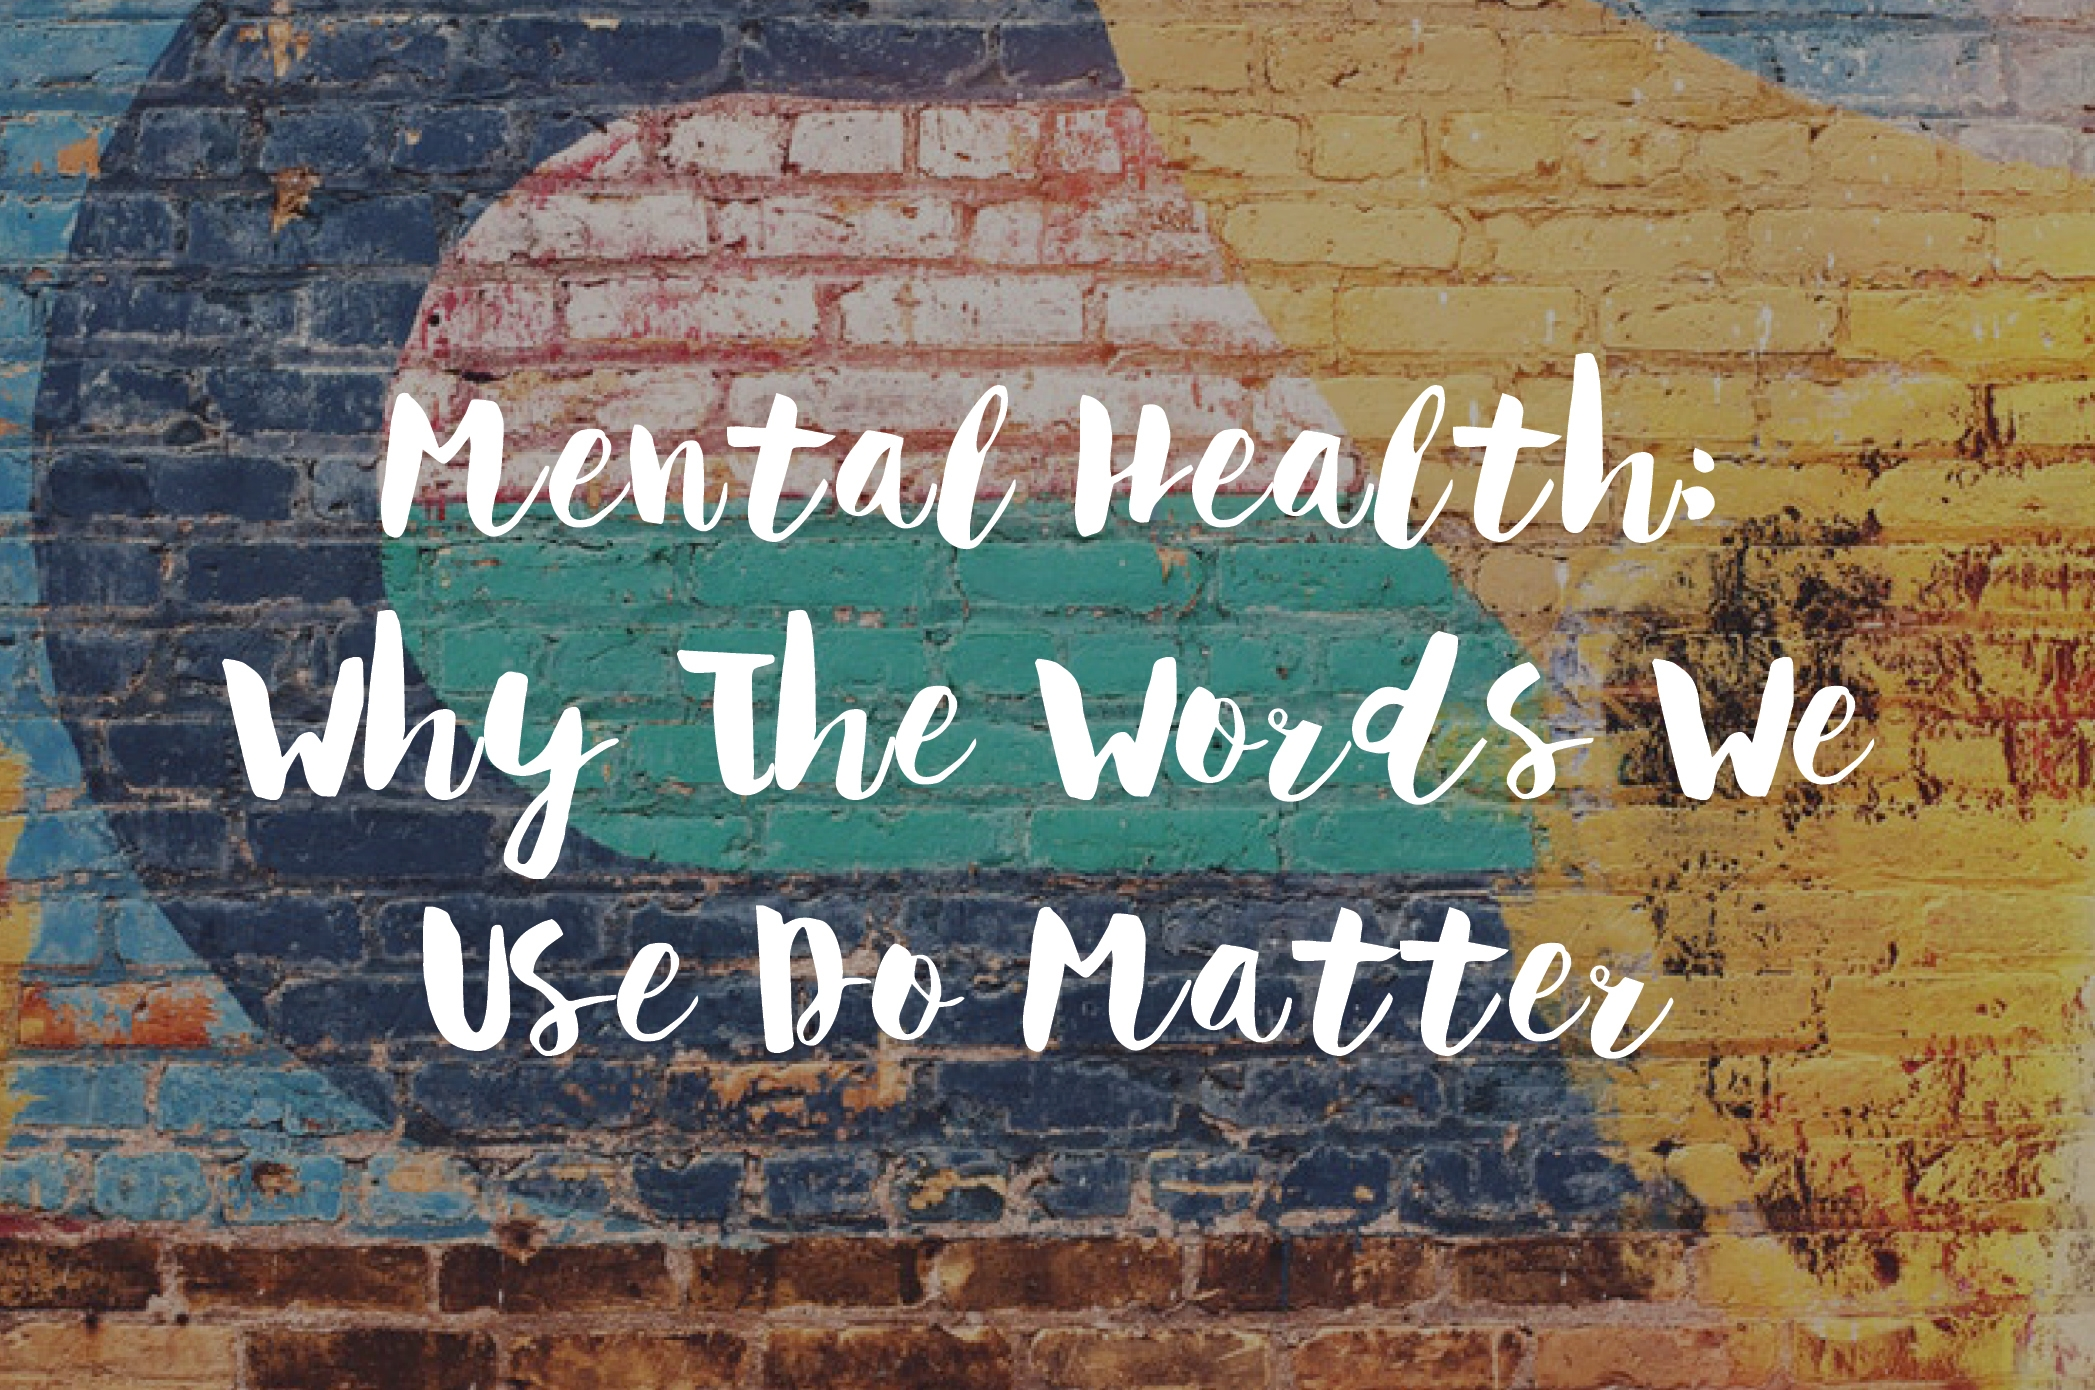 Mental Health: Why The Words We Use Do Matter